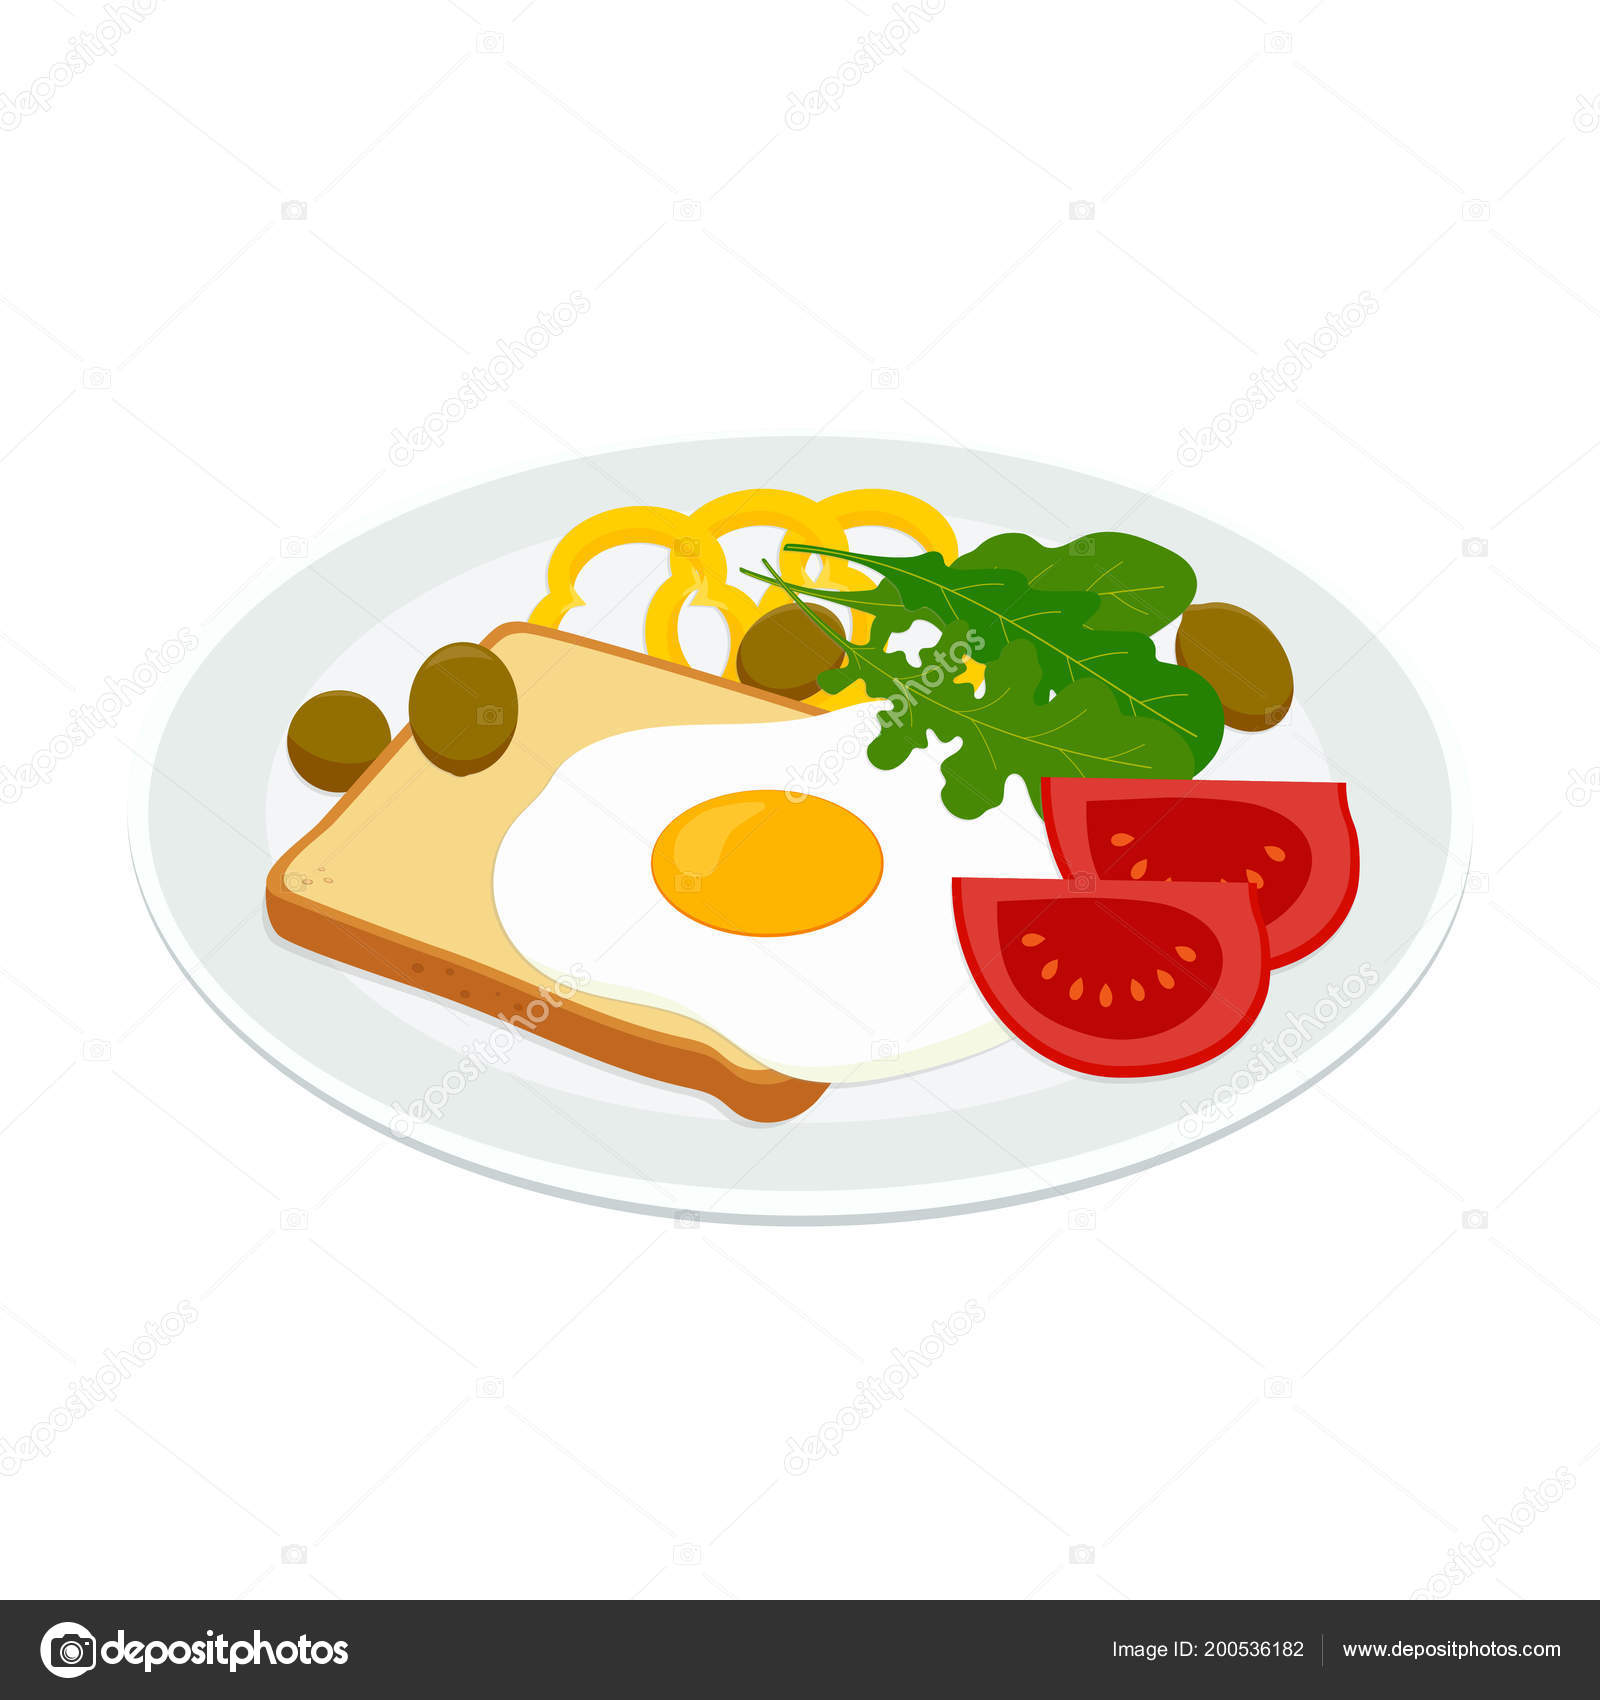 Breakfast Fried Eggs Toast Tomatoes Pepper Arugula Olive Isolated Plate Vector Image By C Makc76 Vector Stock 200536182